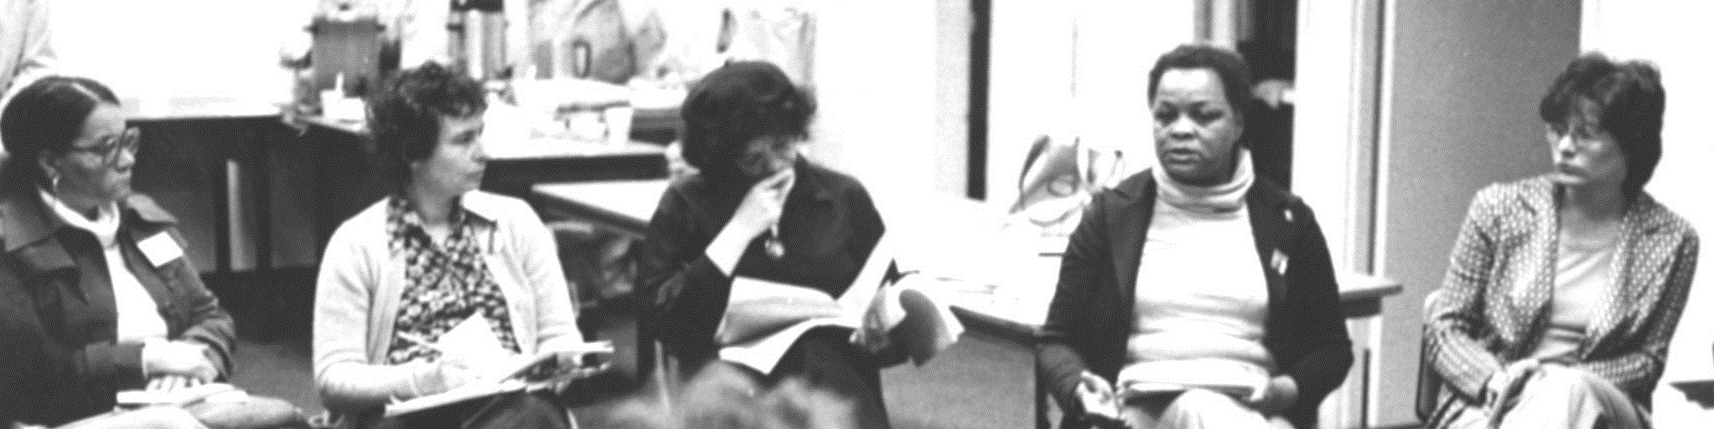 The Woman's Film